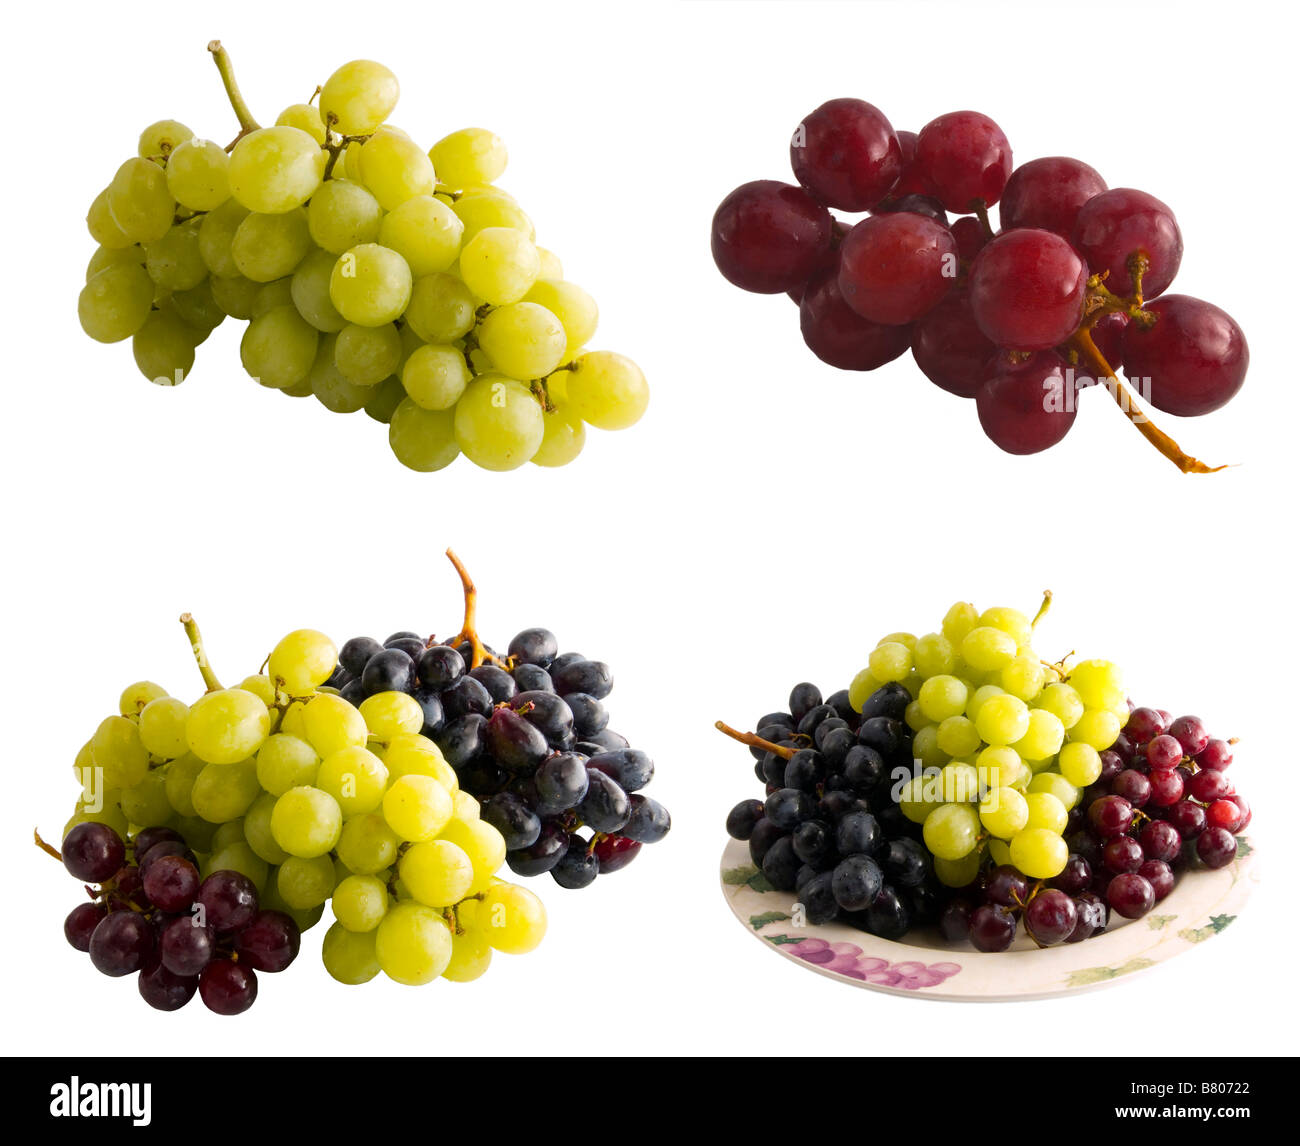 A series of fresh grapes isolated on a white background The full resolution photo of each can be fround in my portfolio - Stock Image